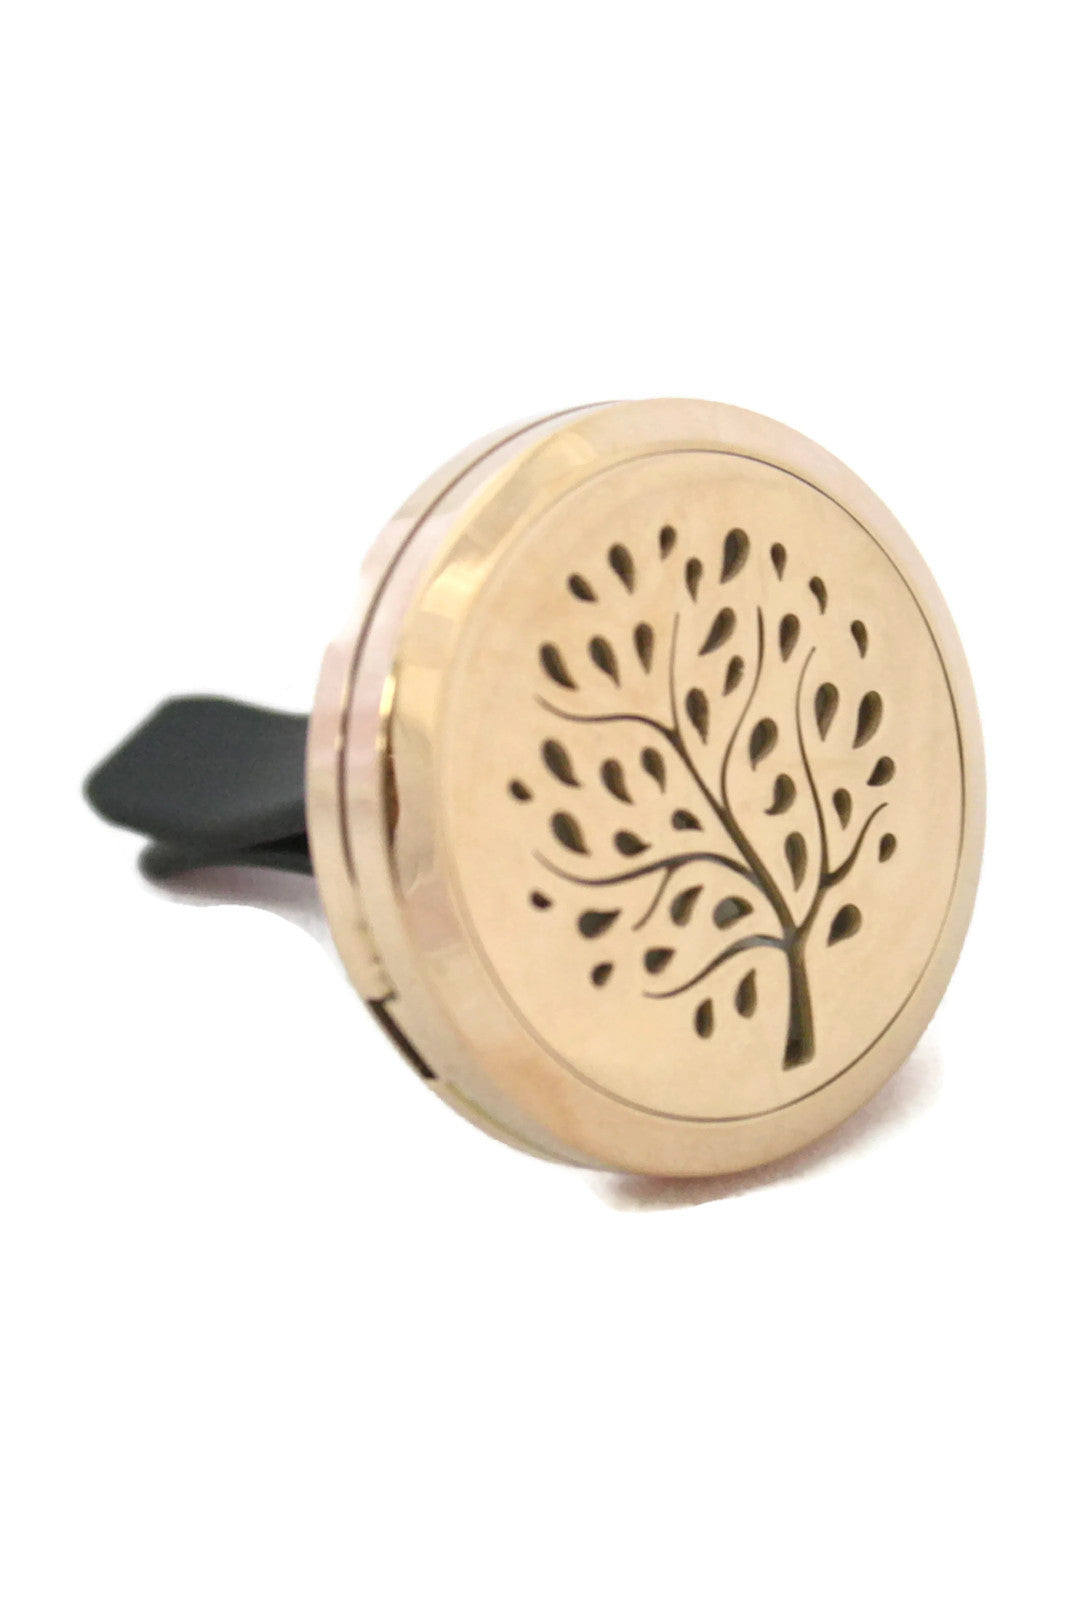 Willow Tree Rose Gold Auto Vent Clip-On Diffuser- 30mm-Car Diffuser-Destination Oils